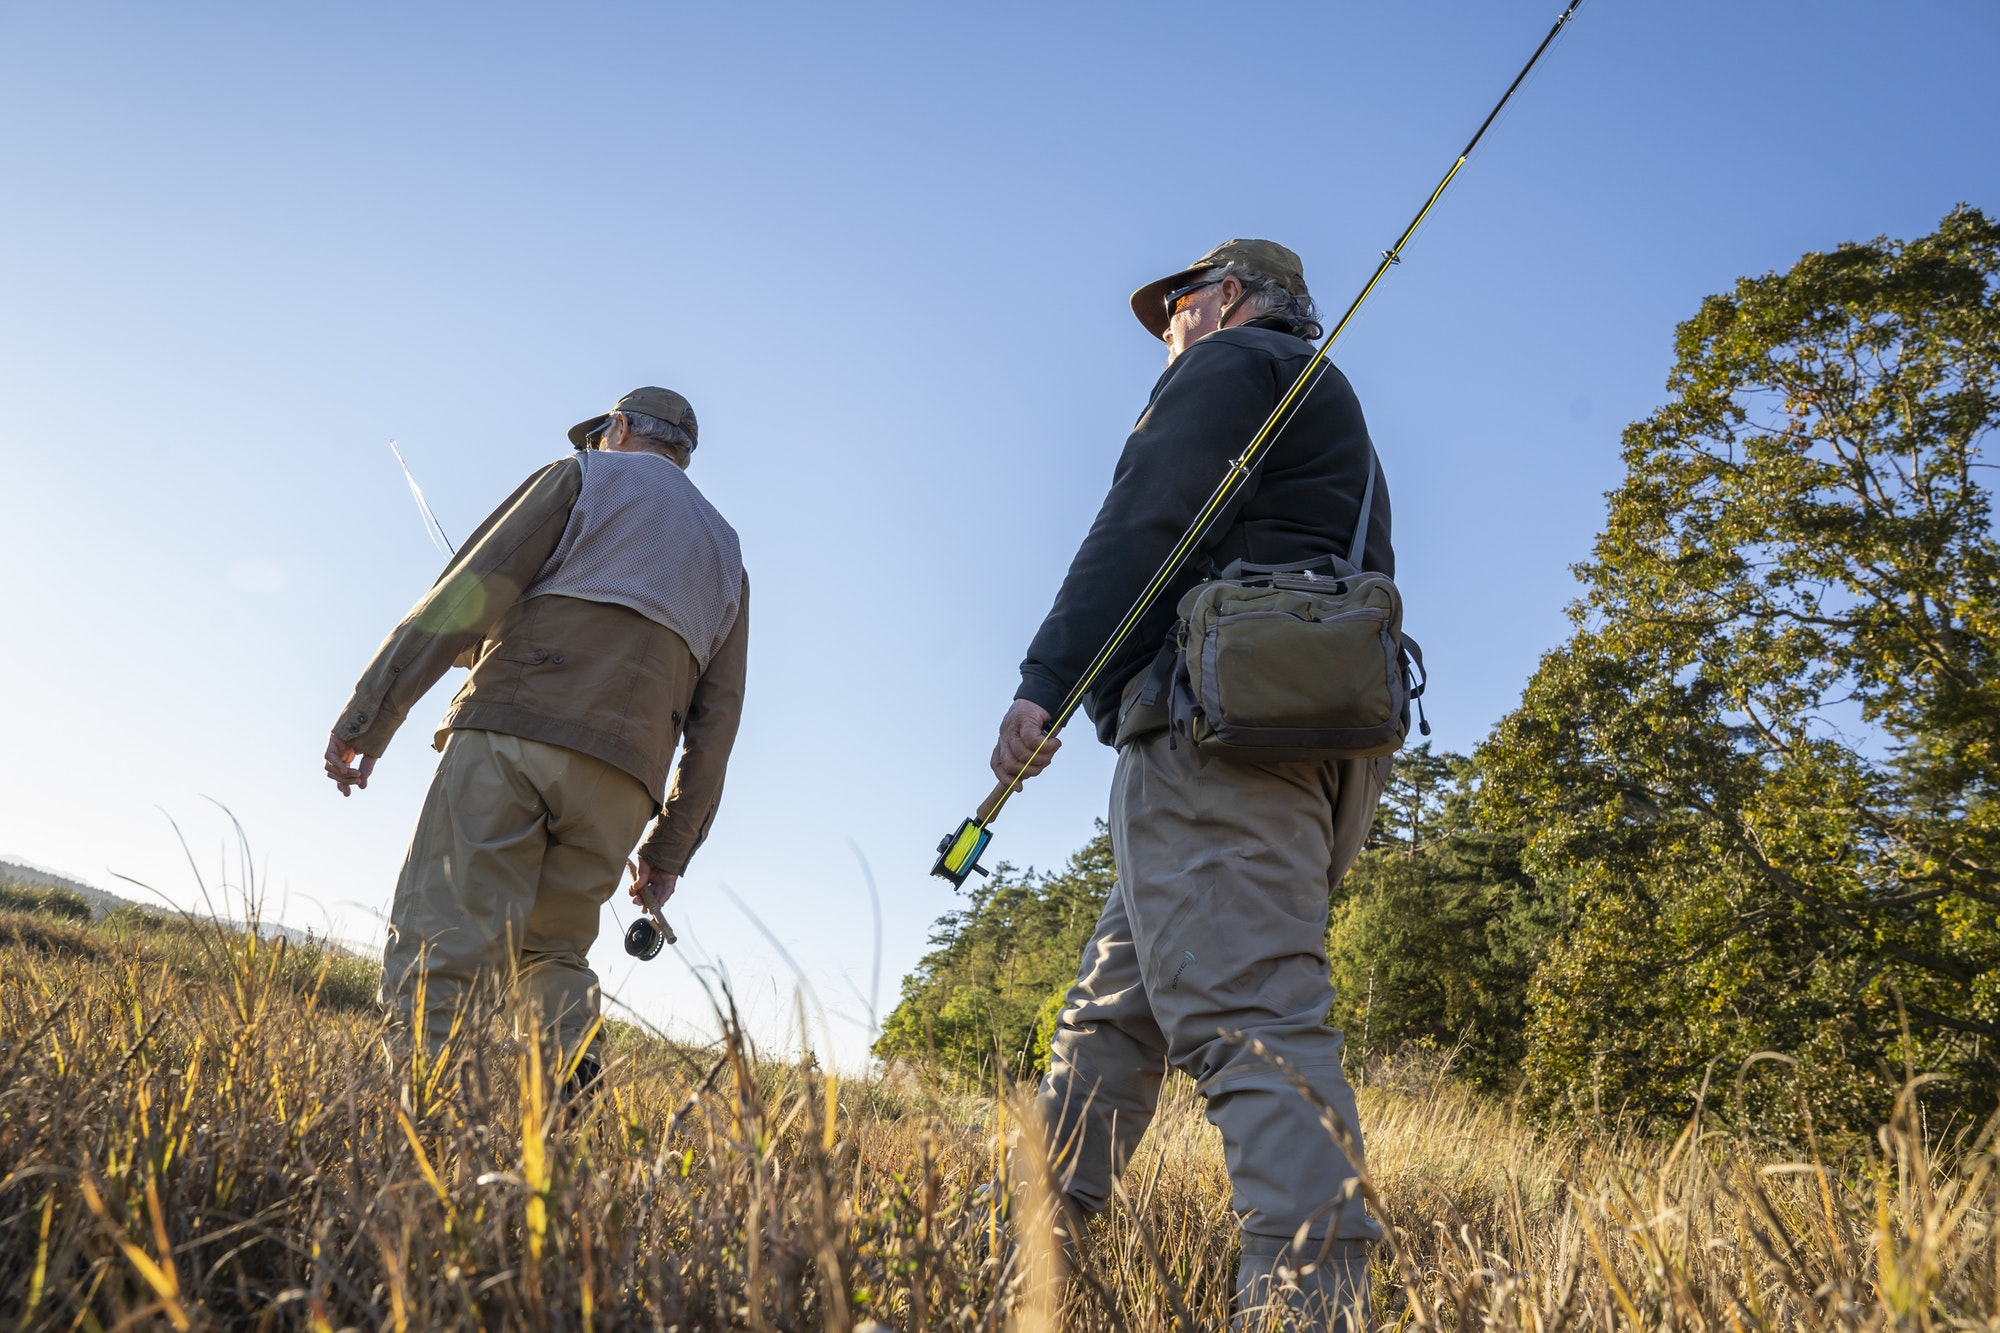 A view looking up at two fly fisherman walking a worn trail to a salt water beach in northwest